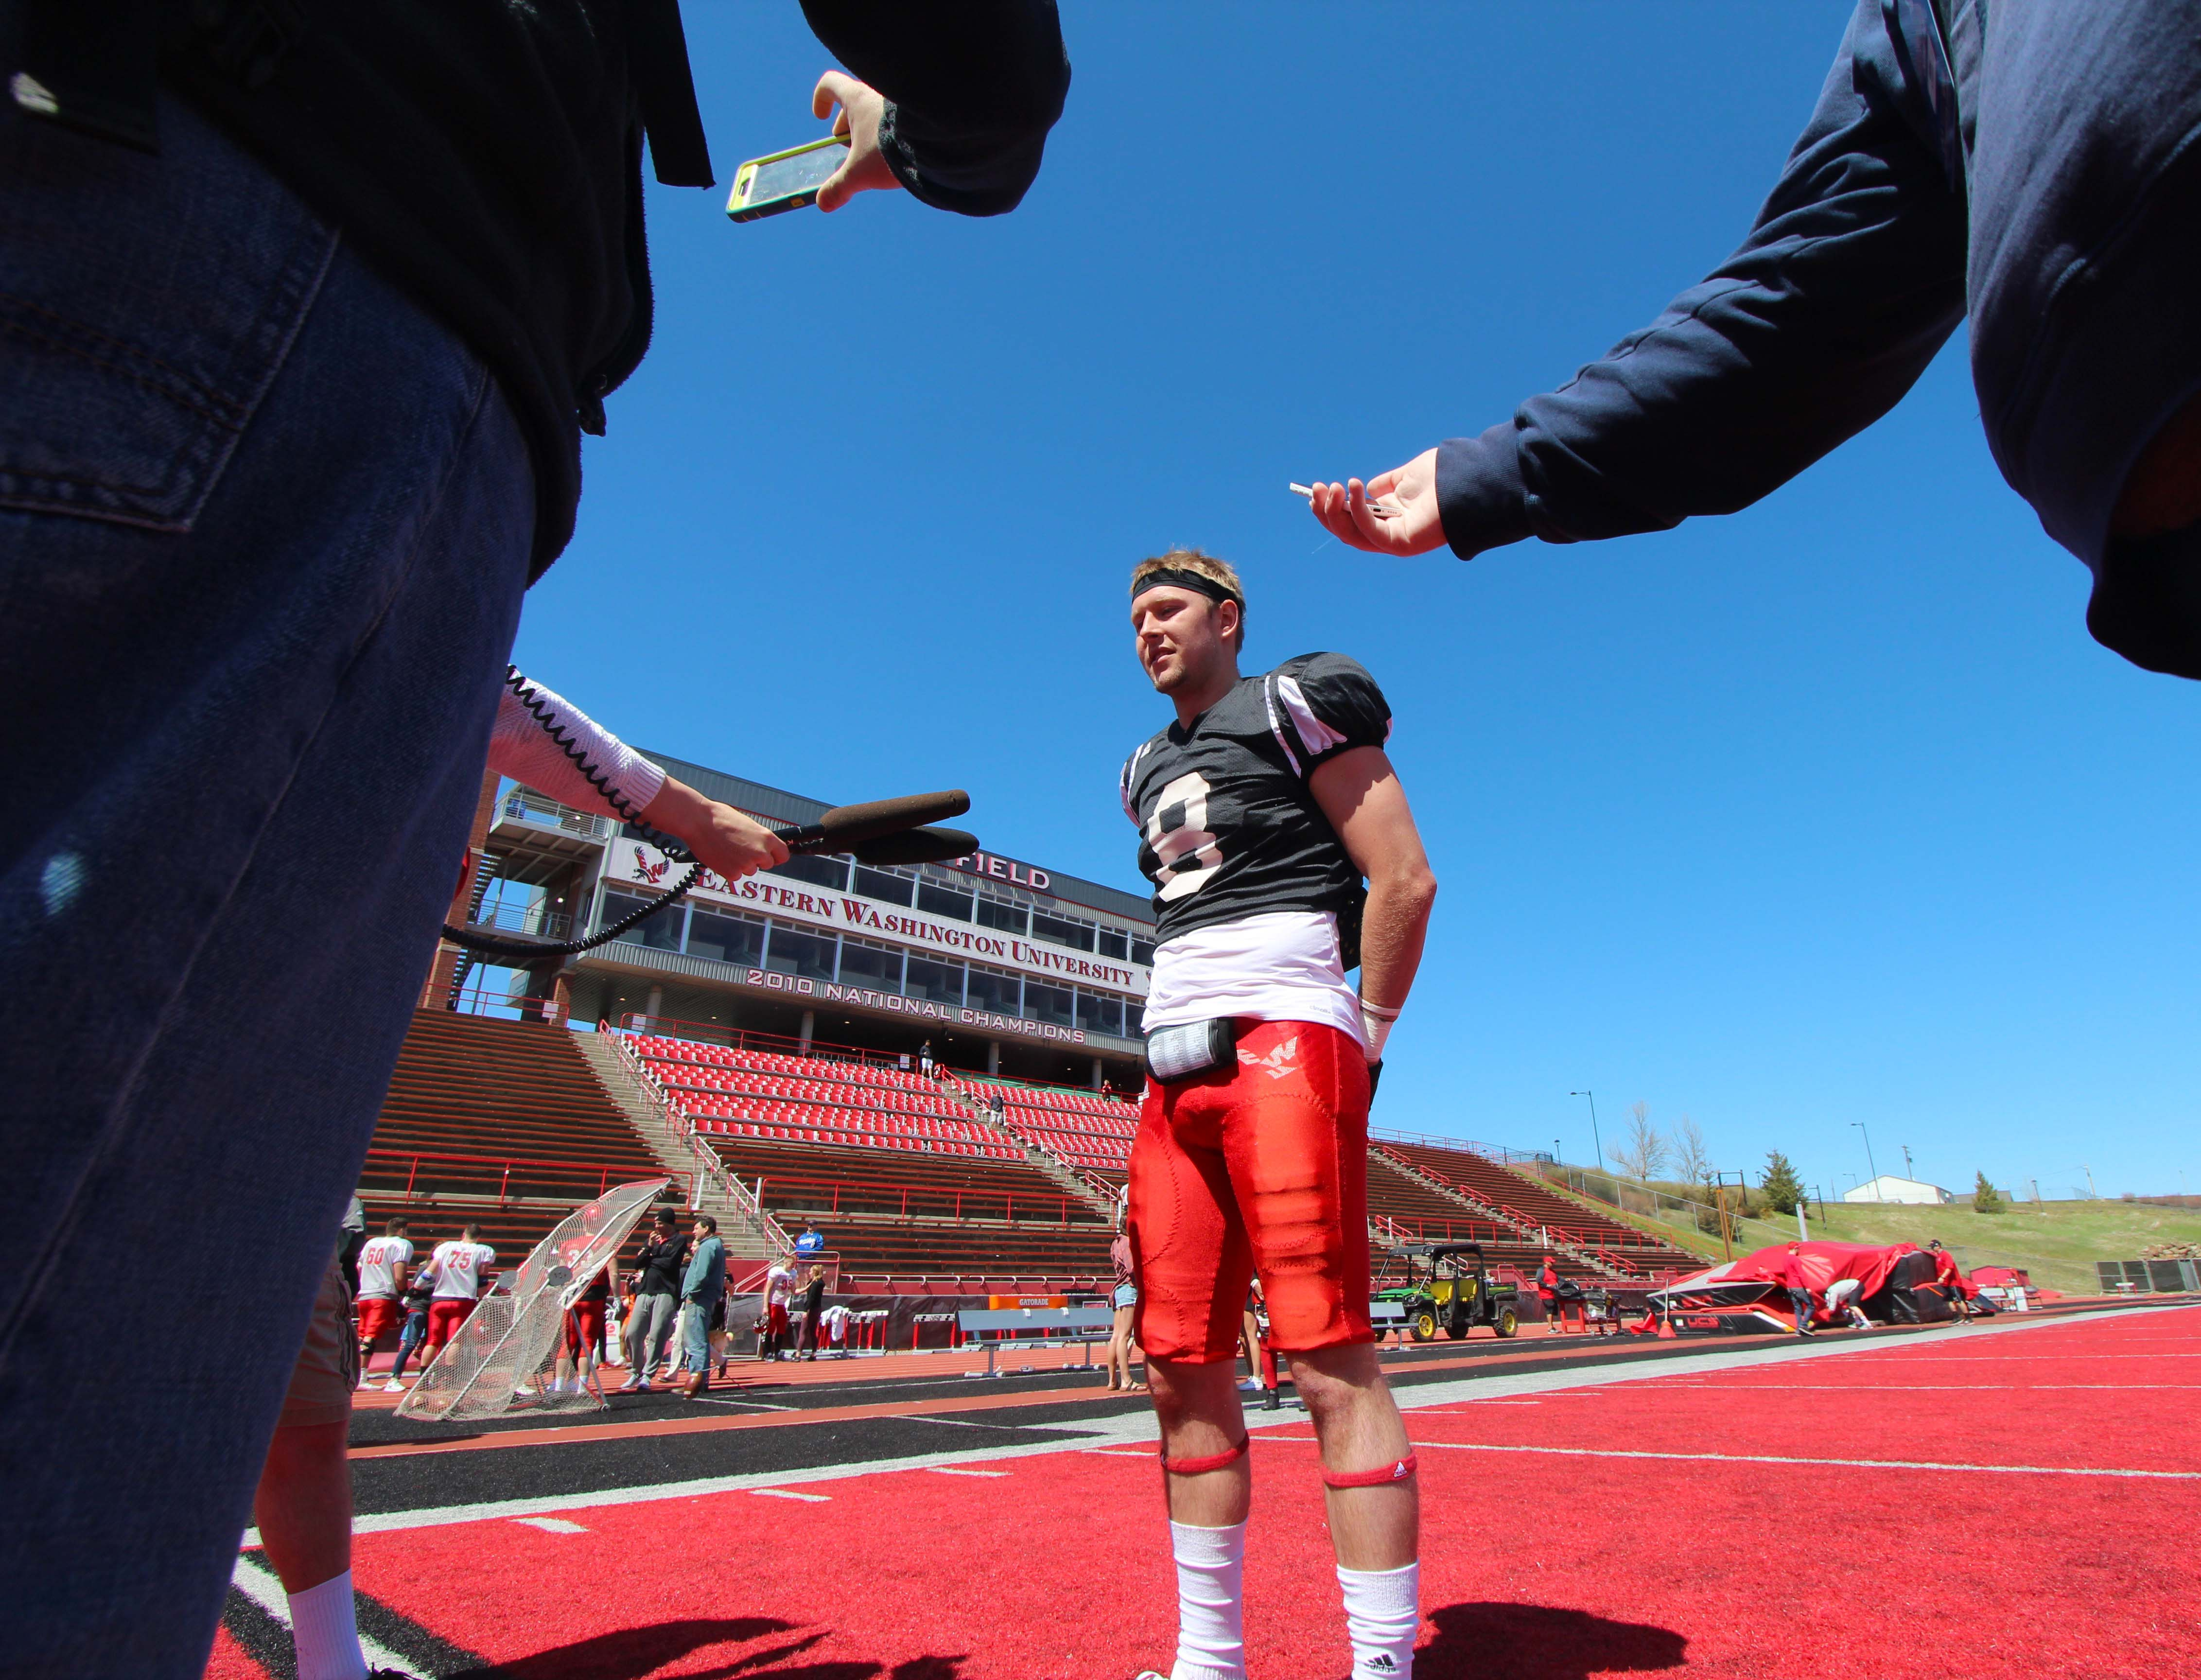 Then sophomore quarterback Gage Gubrud speaks with media after EWU football's spring game on April 22. Gubrud was arrested for obstructing a public servant in downtown Cheney in the early morning of Nov. 5.